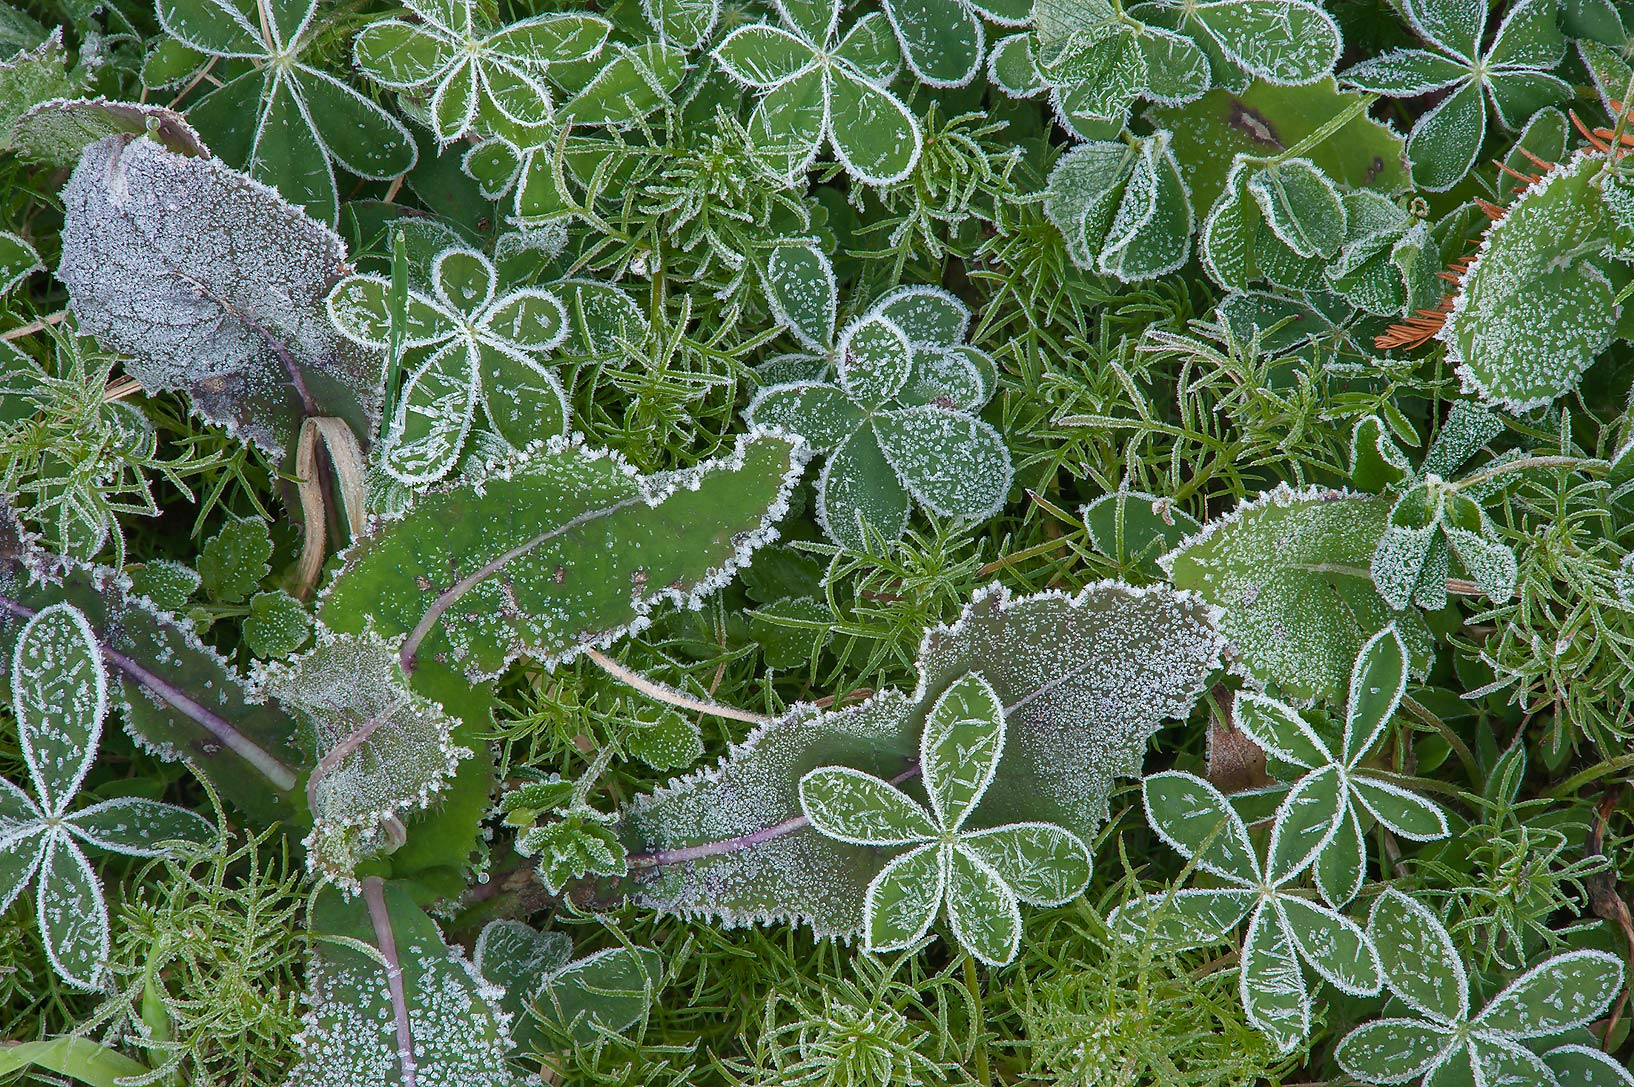 Rosettes of leaves in freeze in TAMU...M University. College Station, Texas